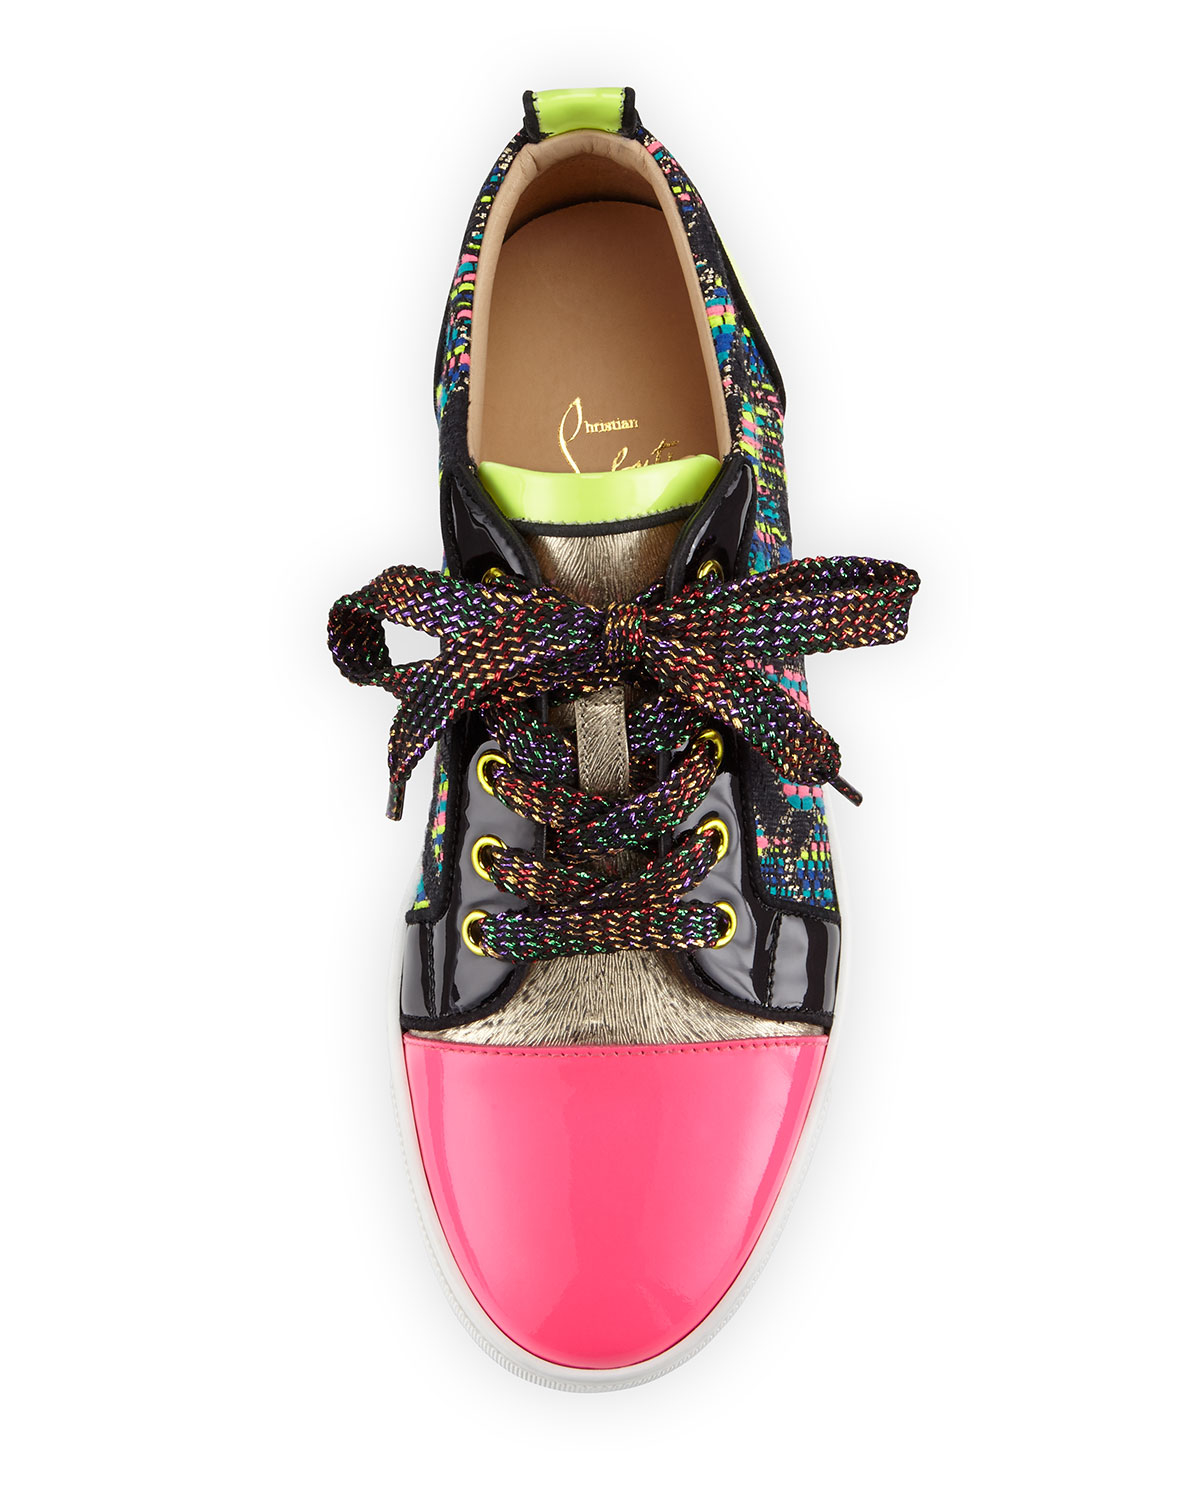 fake mens louboutin shoes - Christian louboutin Gondoliere Woven Low-top Sneaker in Multicolor ...